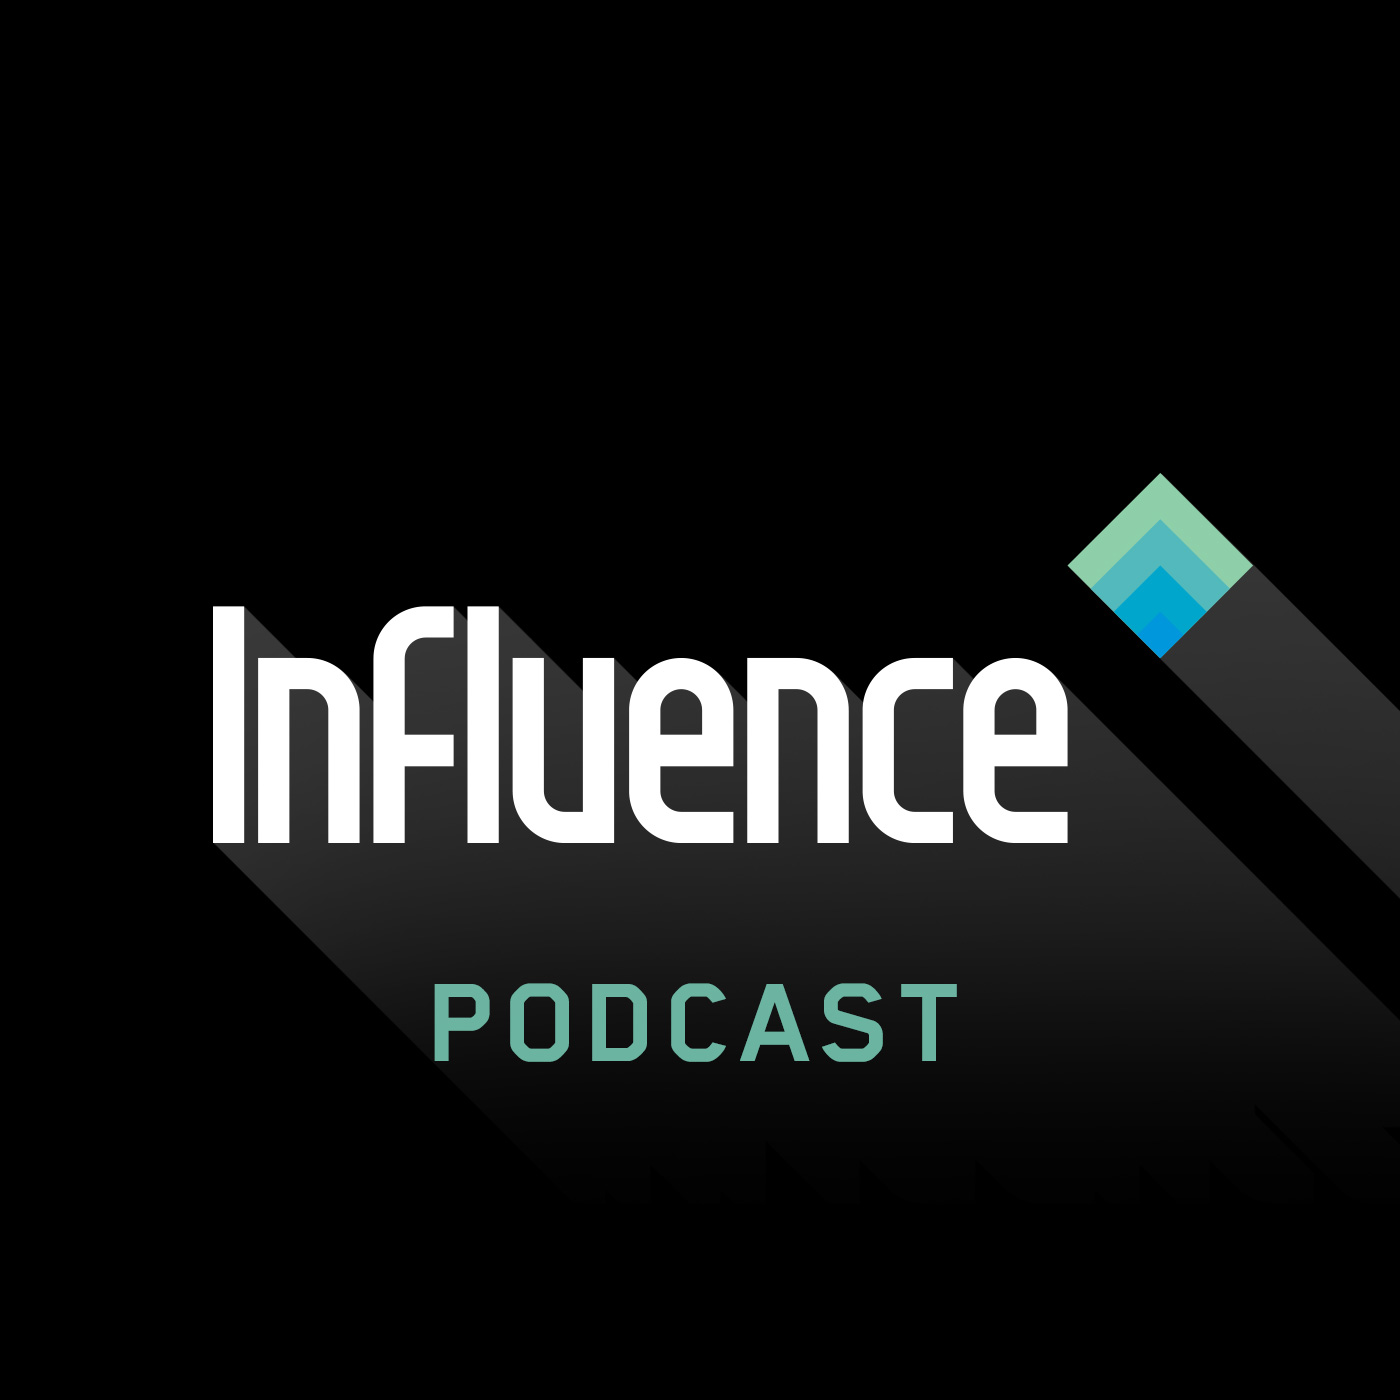 Influence Podcast show art